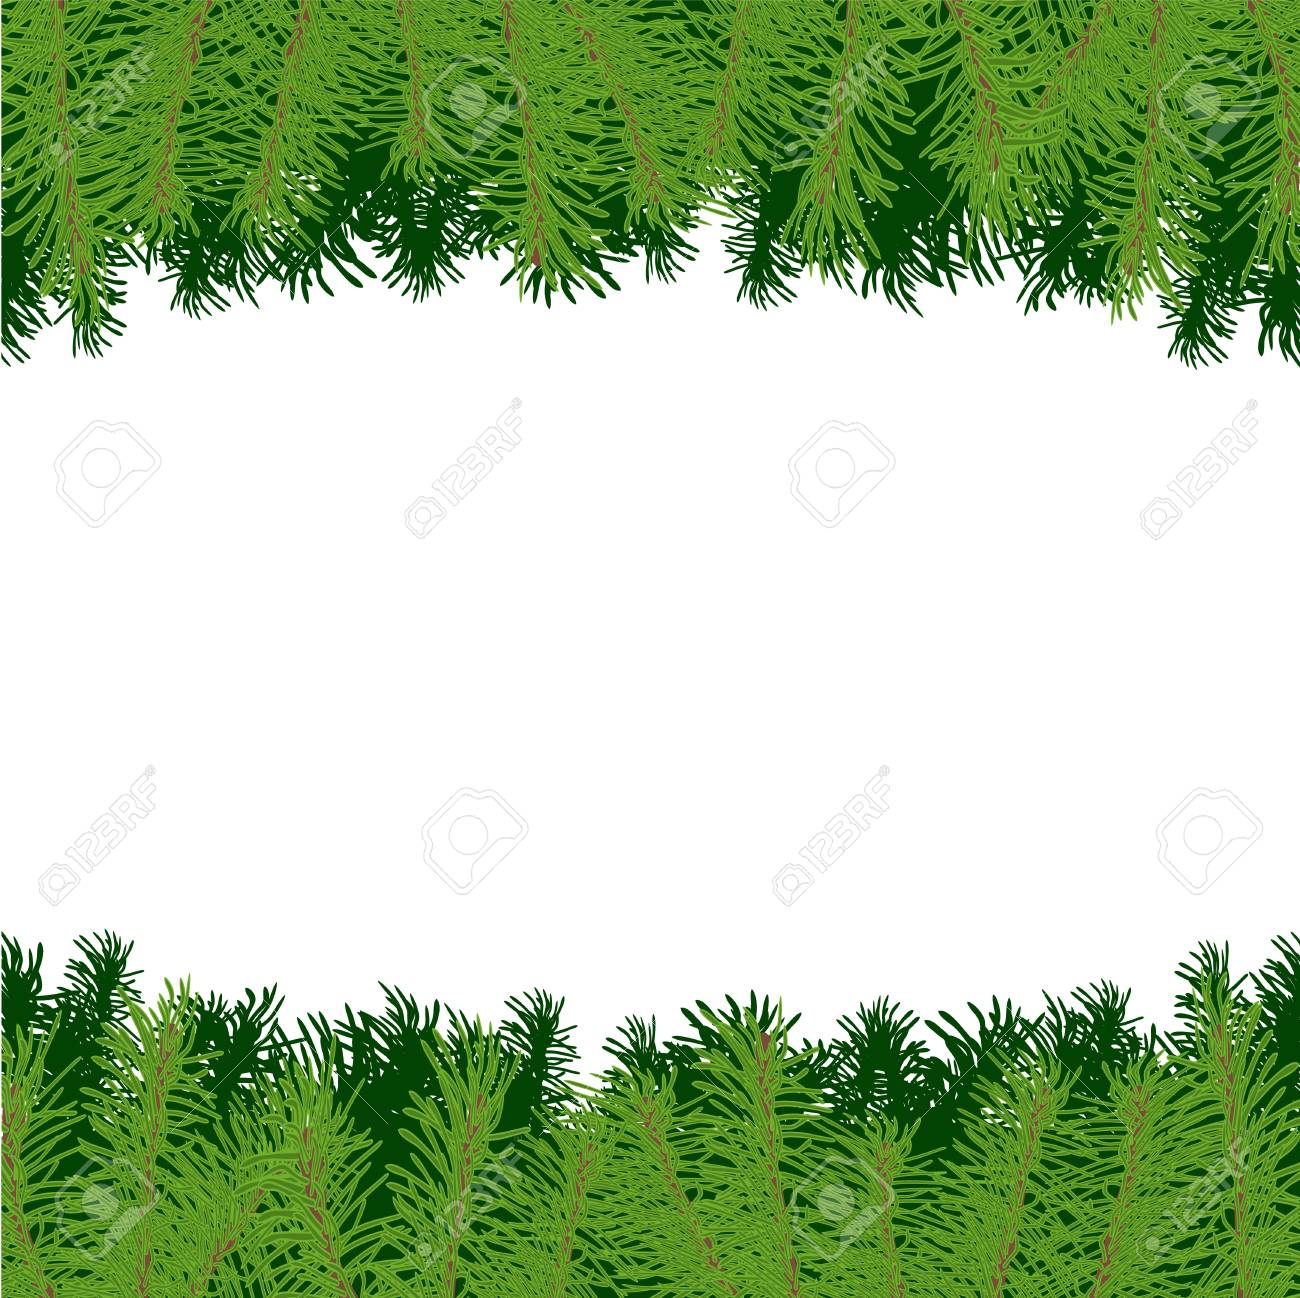 stockfoto vector illustration border or frame with christmas tree branches on white background for design card or poster - Christmas Tree Branches